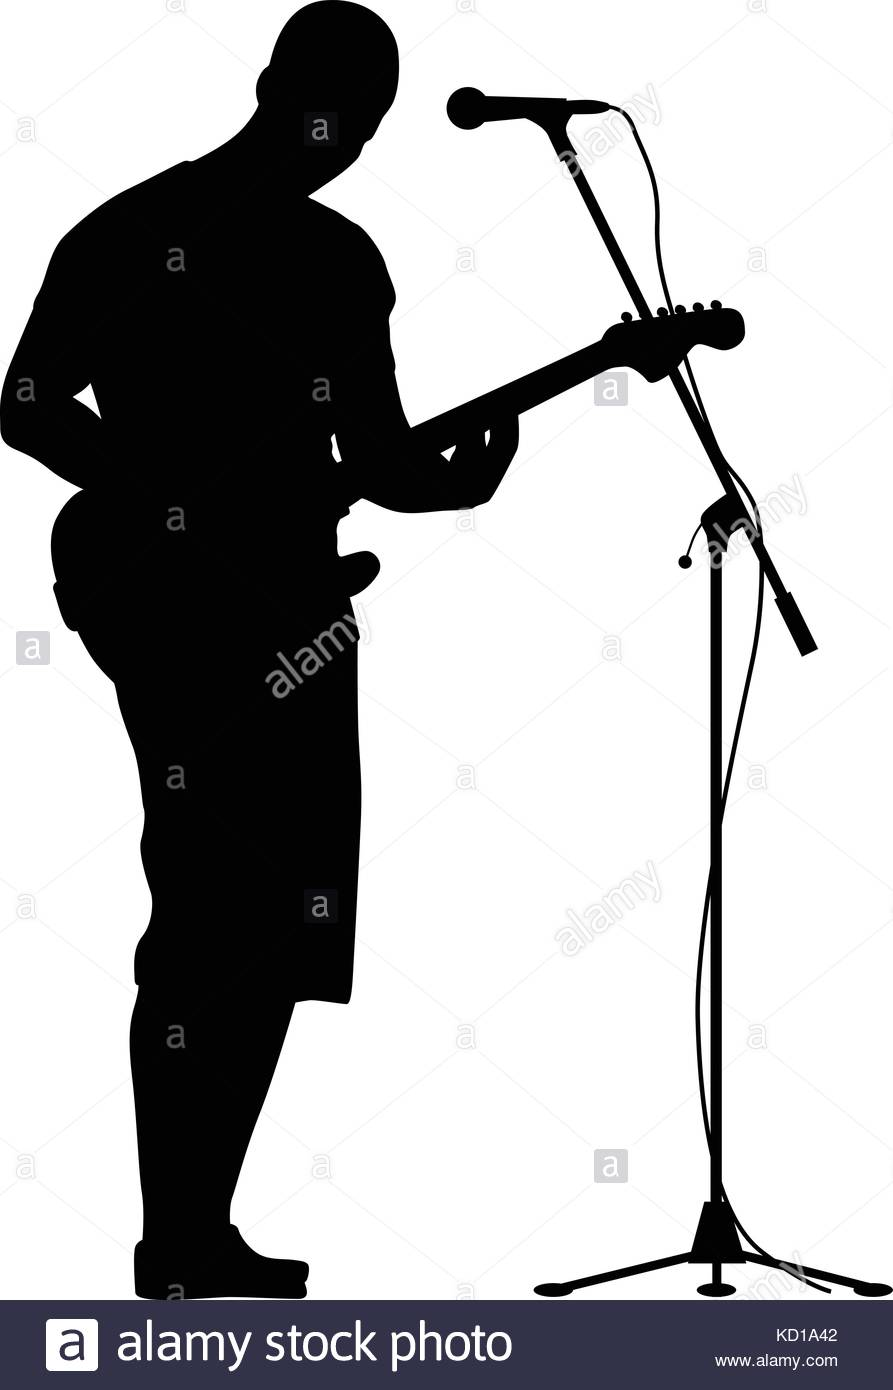 893x1390 Singer Stock Vector Images